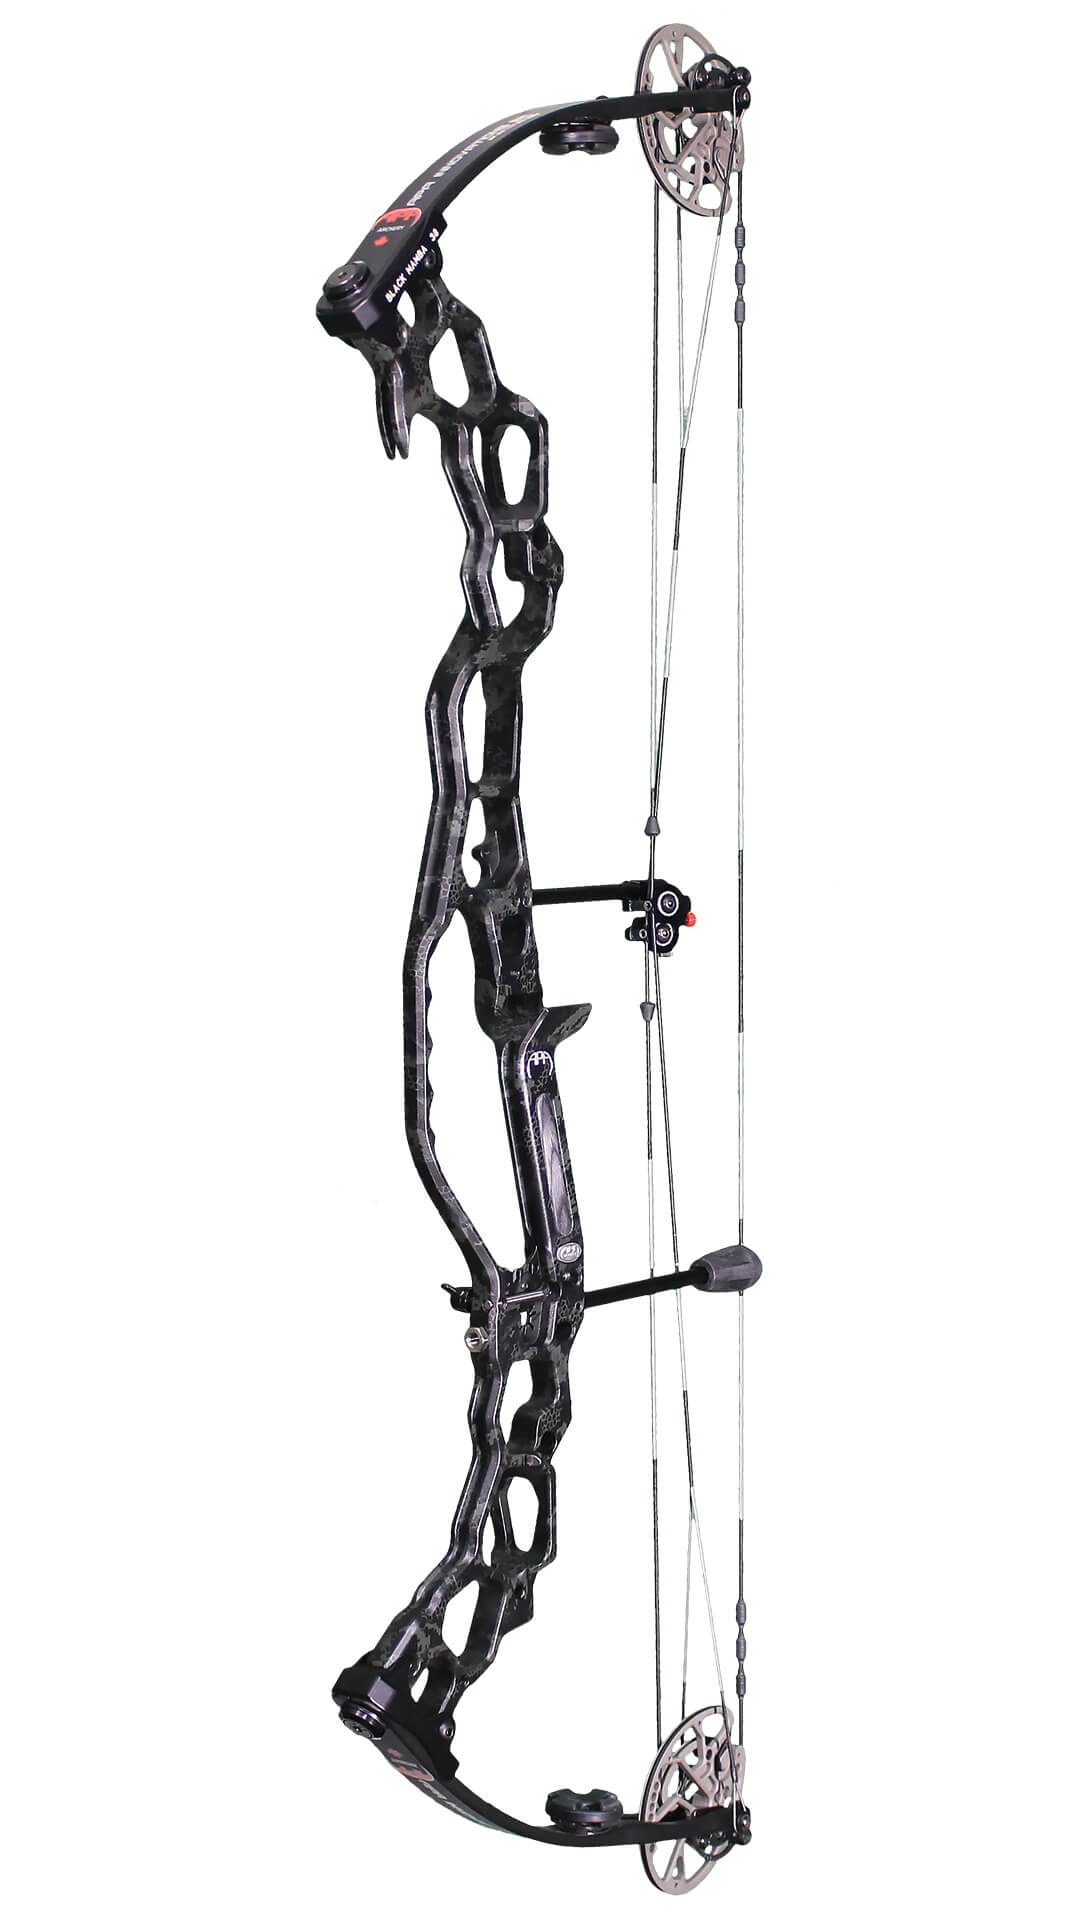 APA Black Mamba 38 Compound Bow